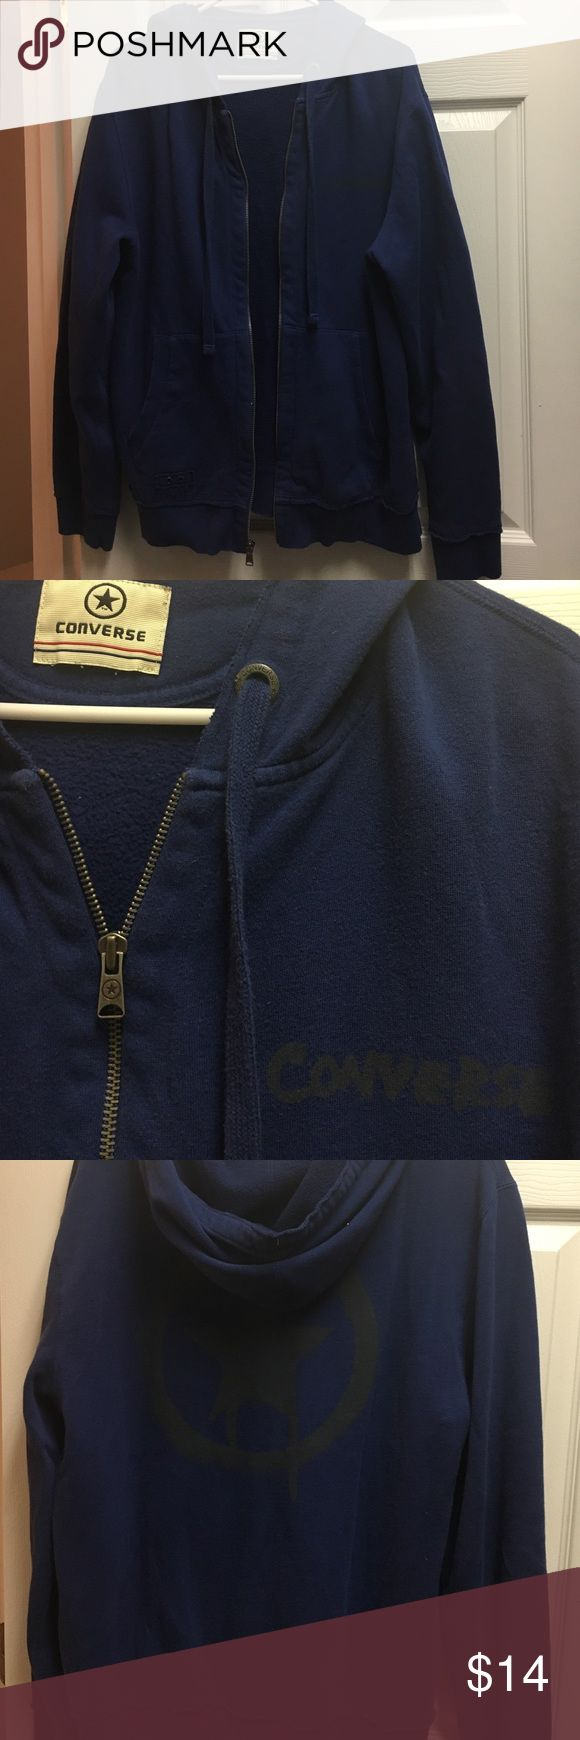 Converse zip up hoodie w/pockets Like new worn once awesome zip up hoodie in perfect condition with a big star ⭐️ on the back Converse Tops Sweatshirts & Hoodies